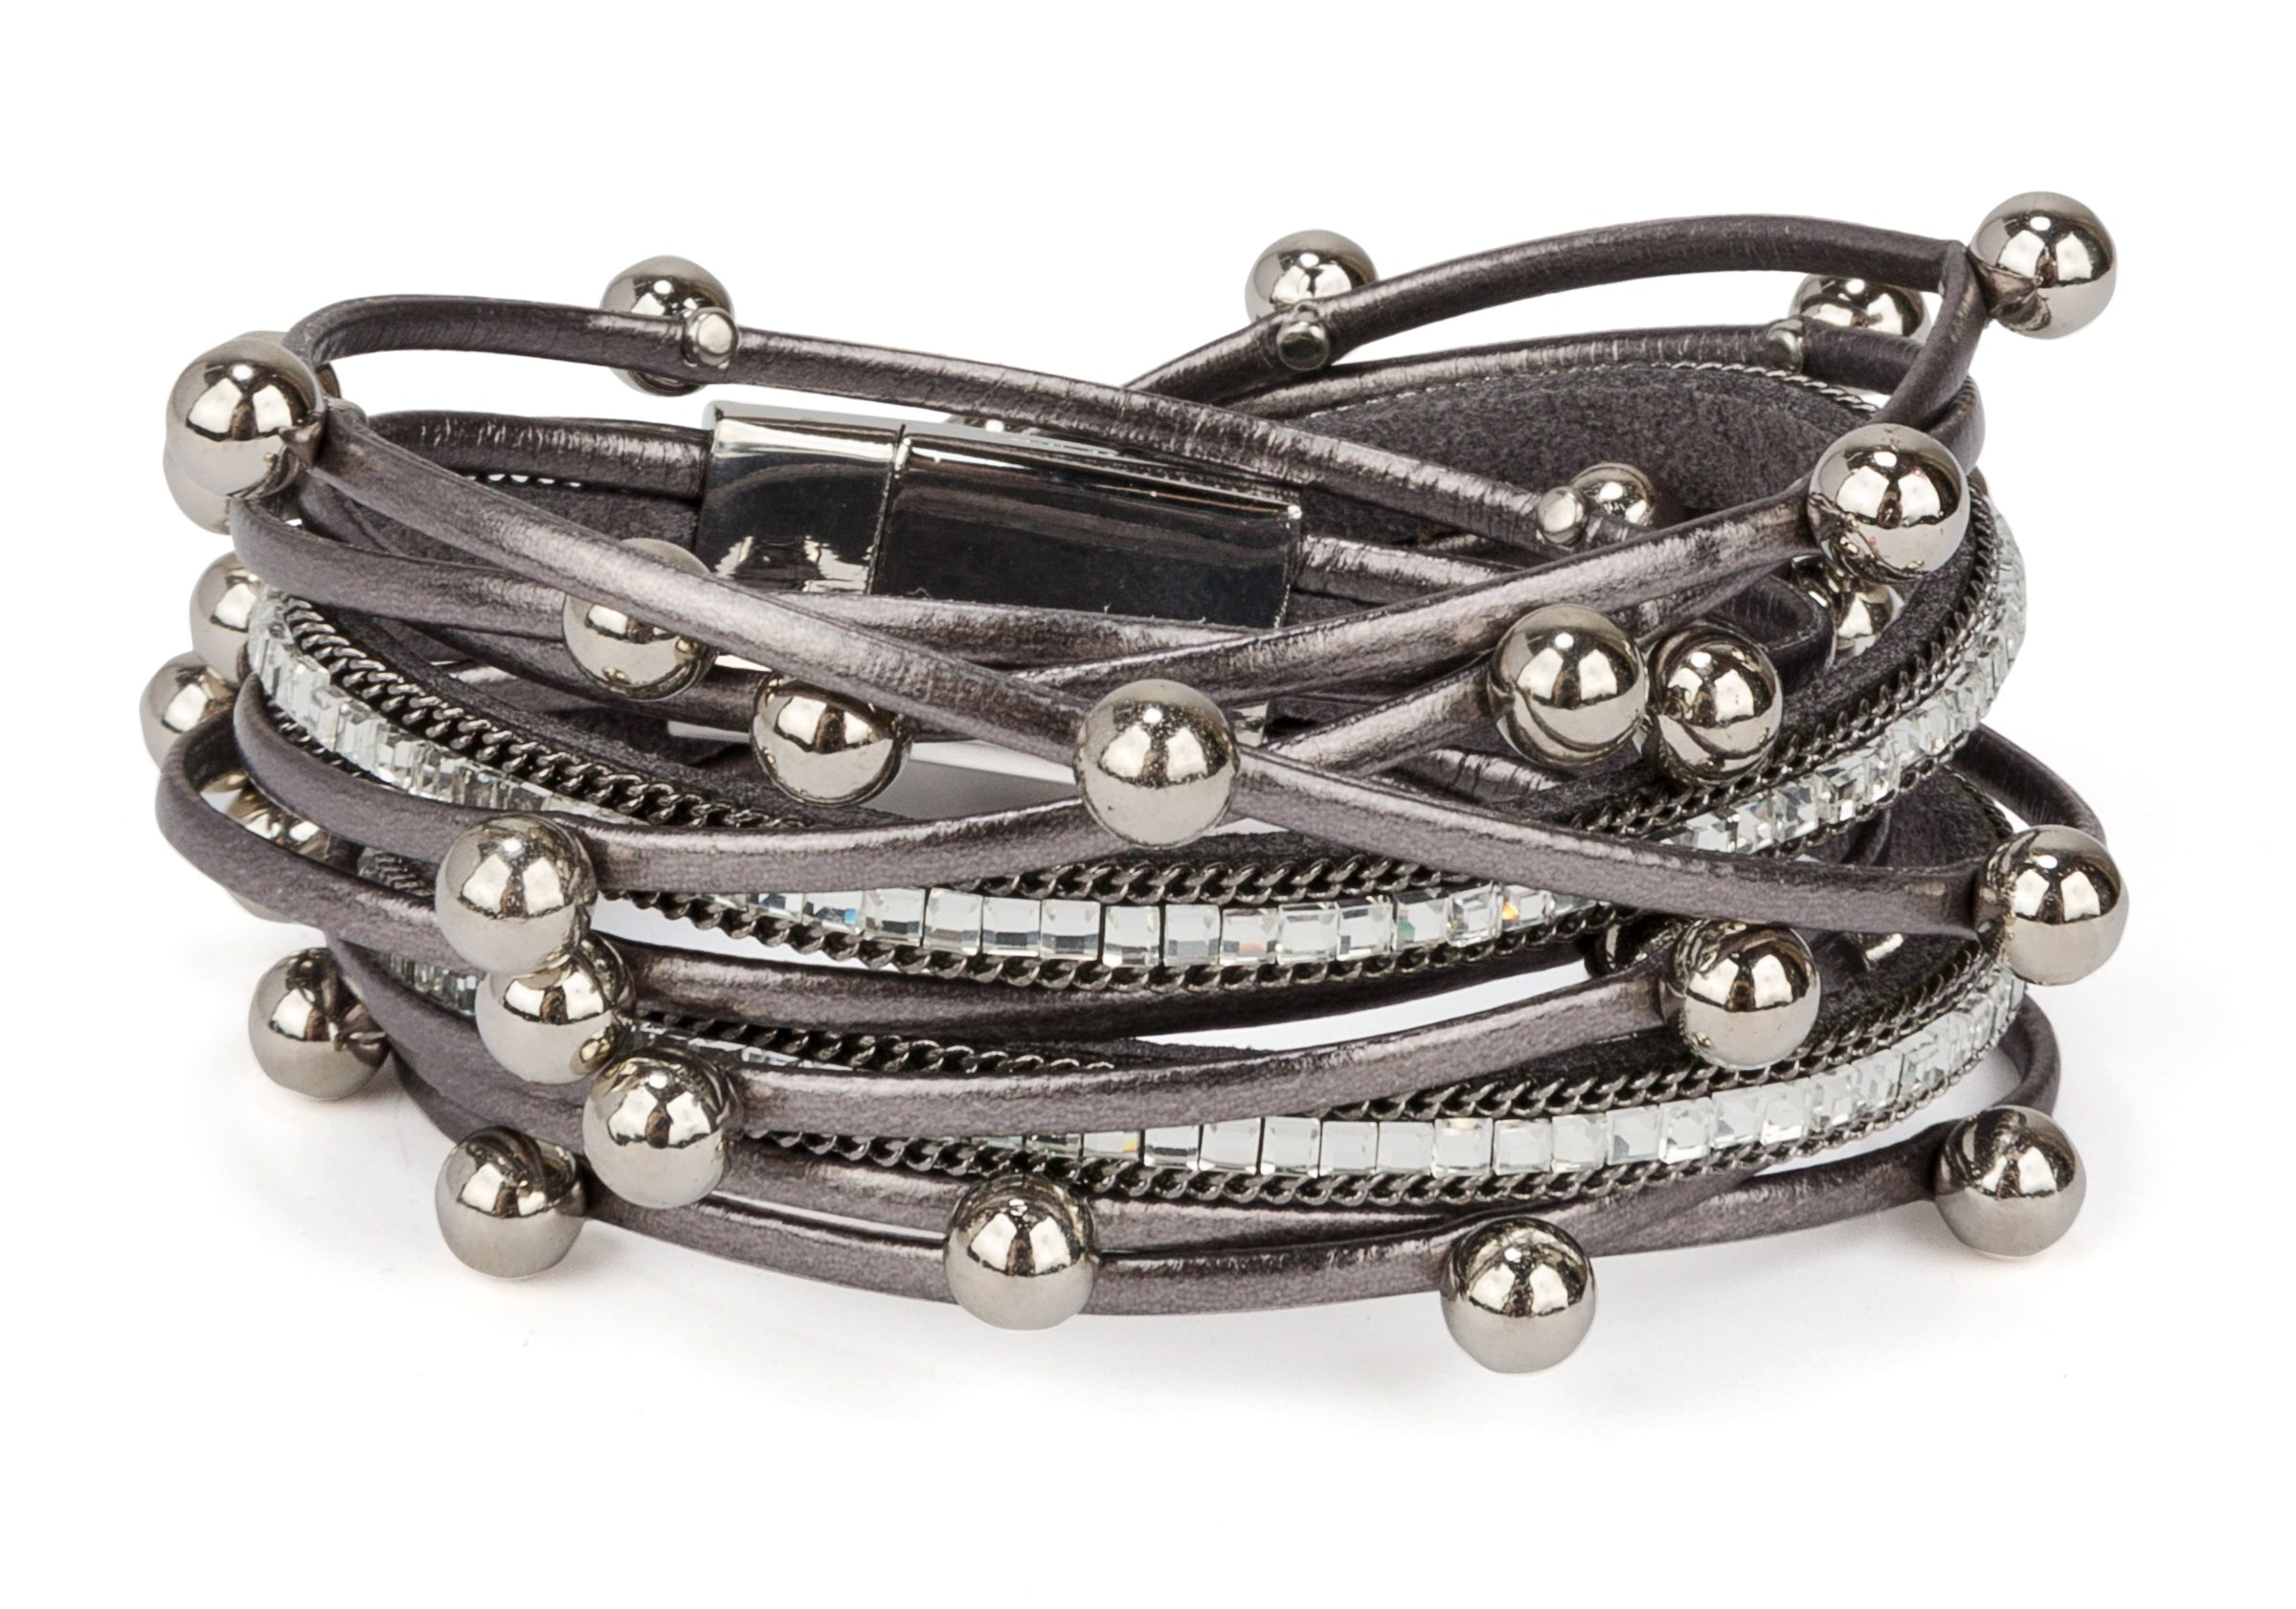 SPUNKYsoul New! Classy Bracelet Multi Strand in Gunmetal with Rhinestones, Orbs & Magnet Clasp for Women Collection by SPUNKYsoul